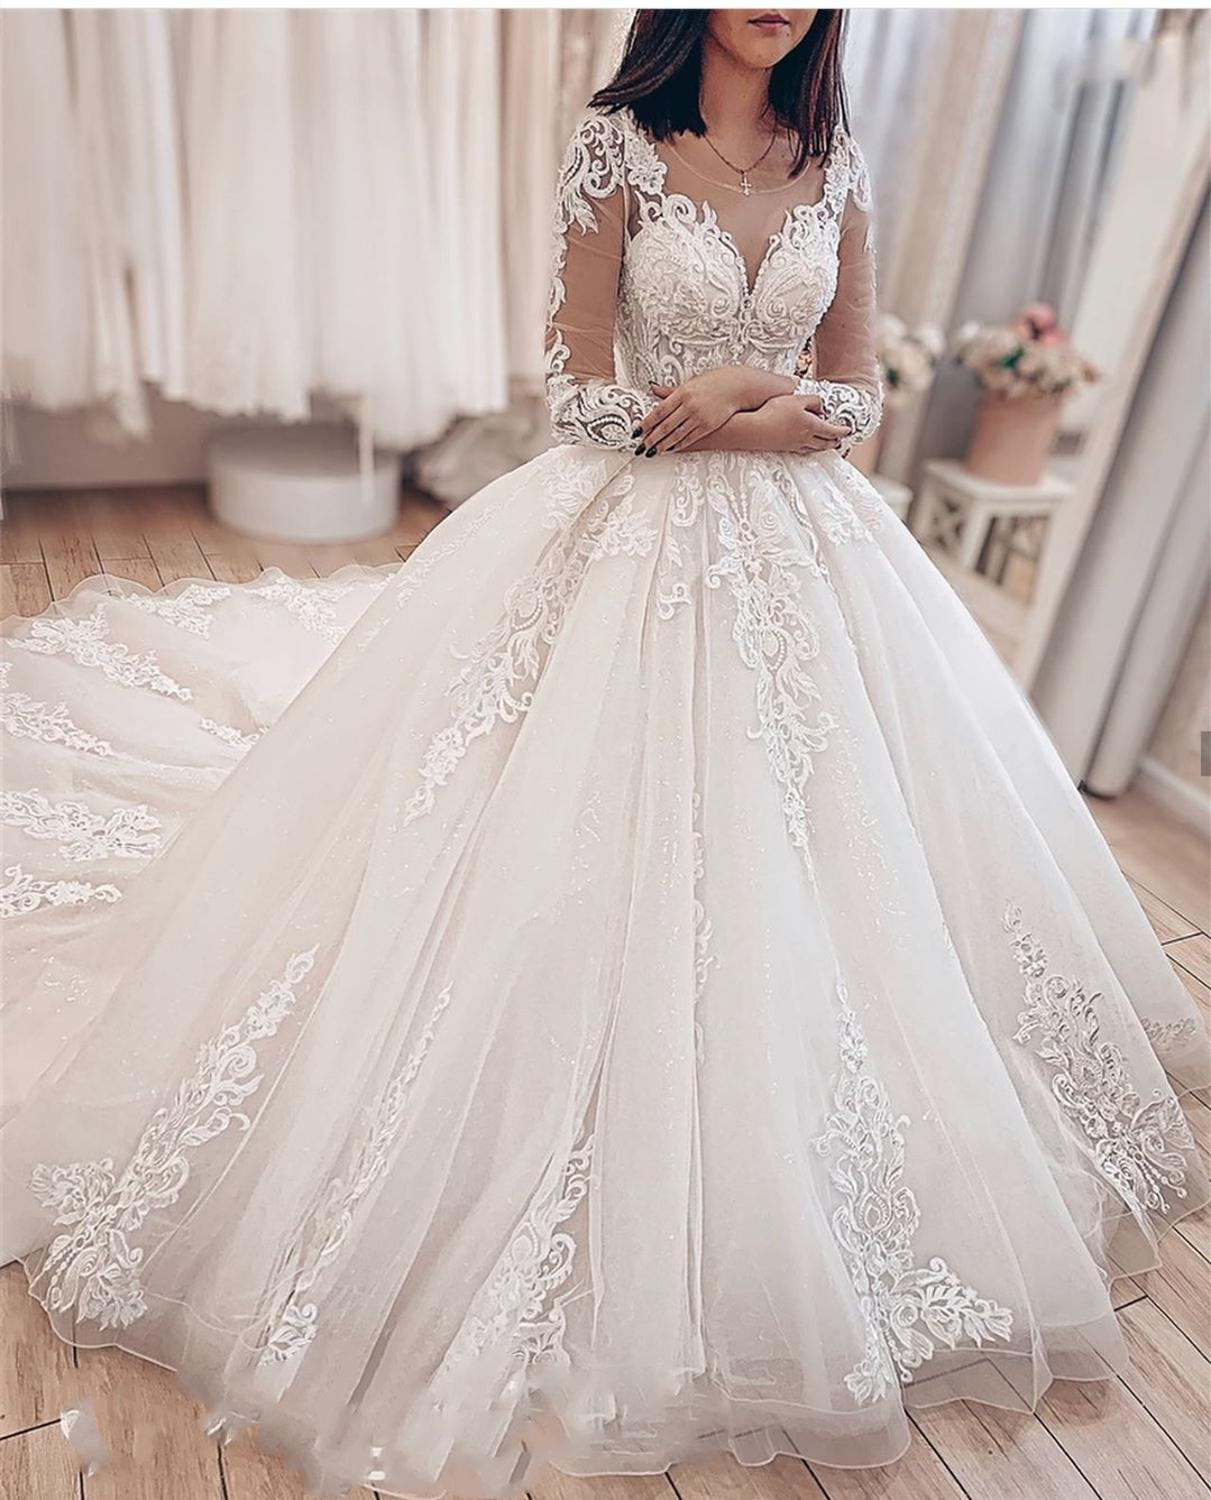 2020 Lastest Wedding Dress Cap Sleeve Ball Gowns Lace High Quality Dubai Luxury Bridal  Gowns Robe Mariage 2019 White Backless